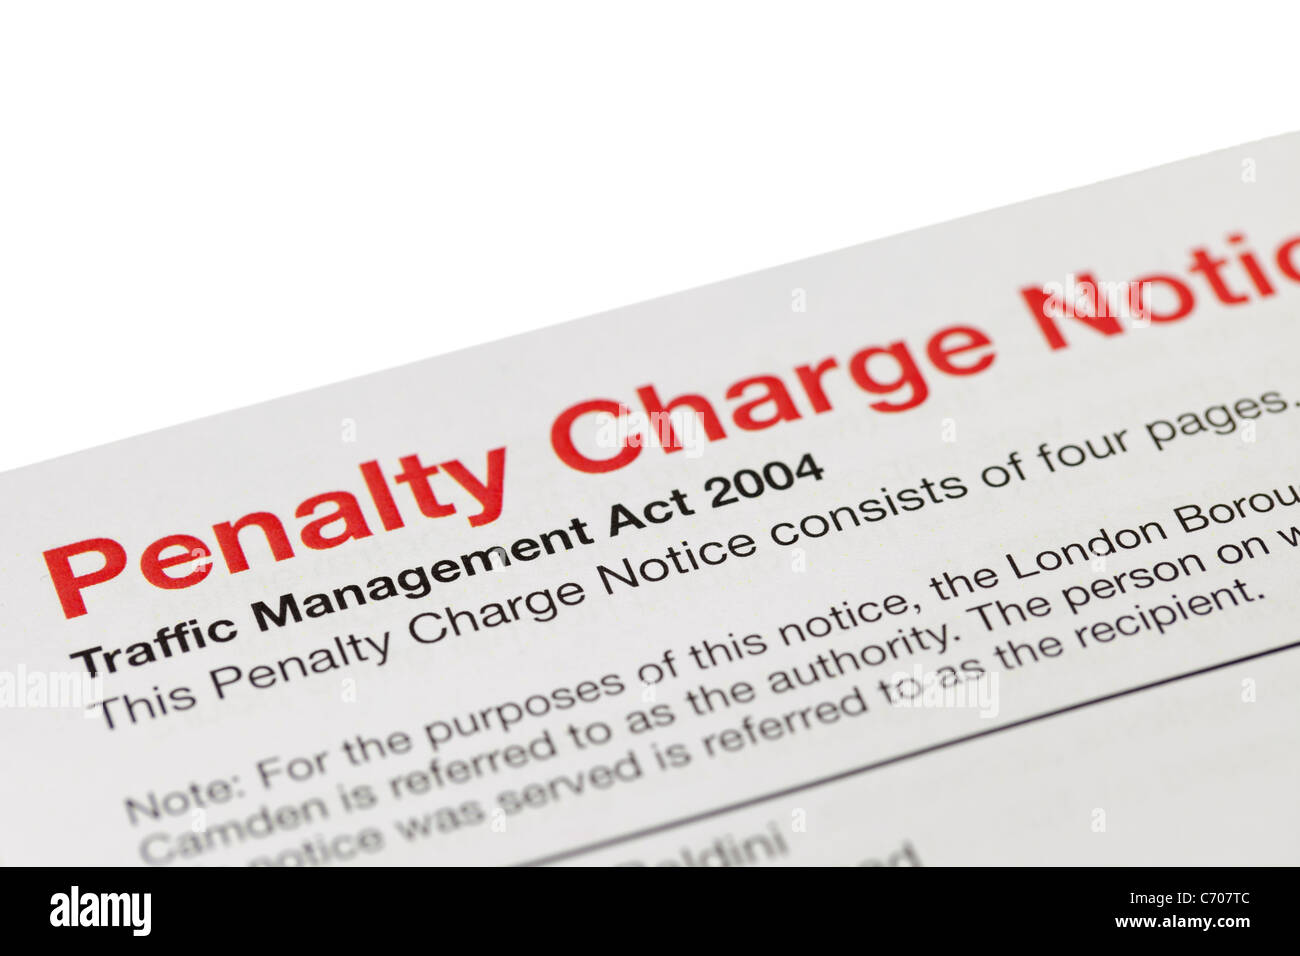 A penalty charge notice, UK - Stock Image